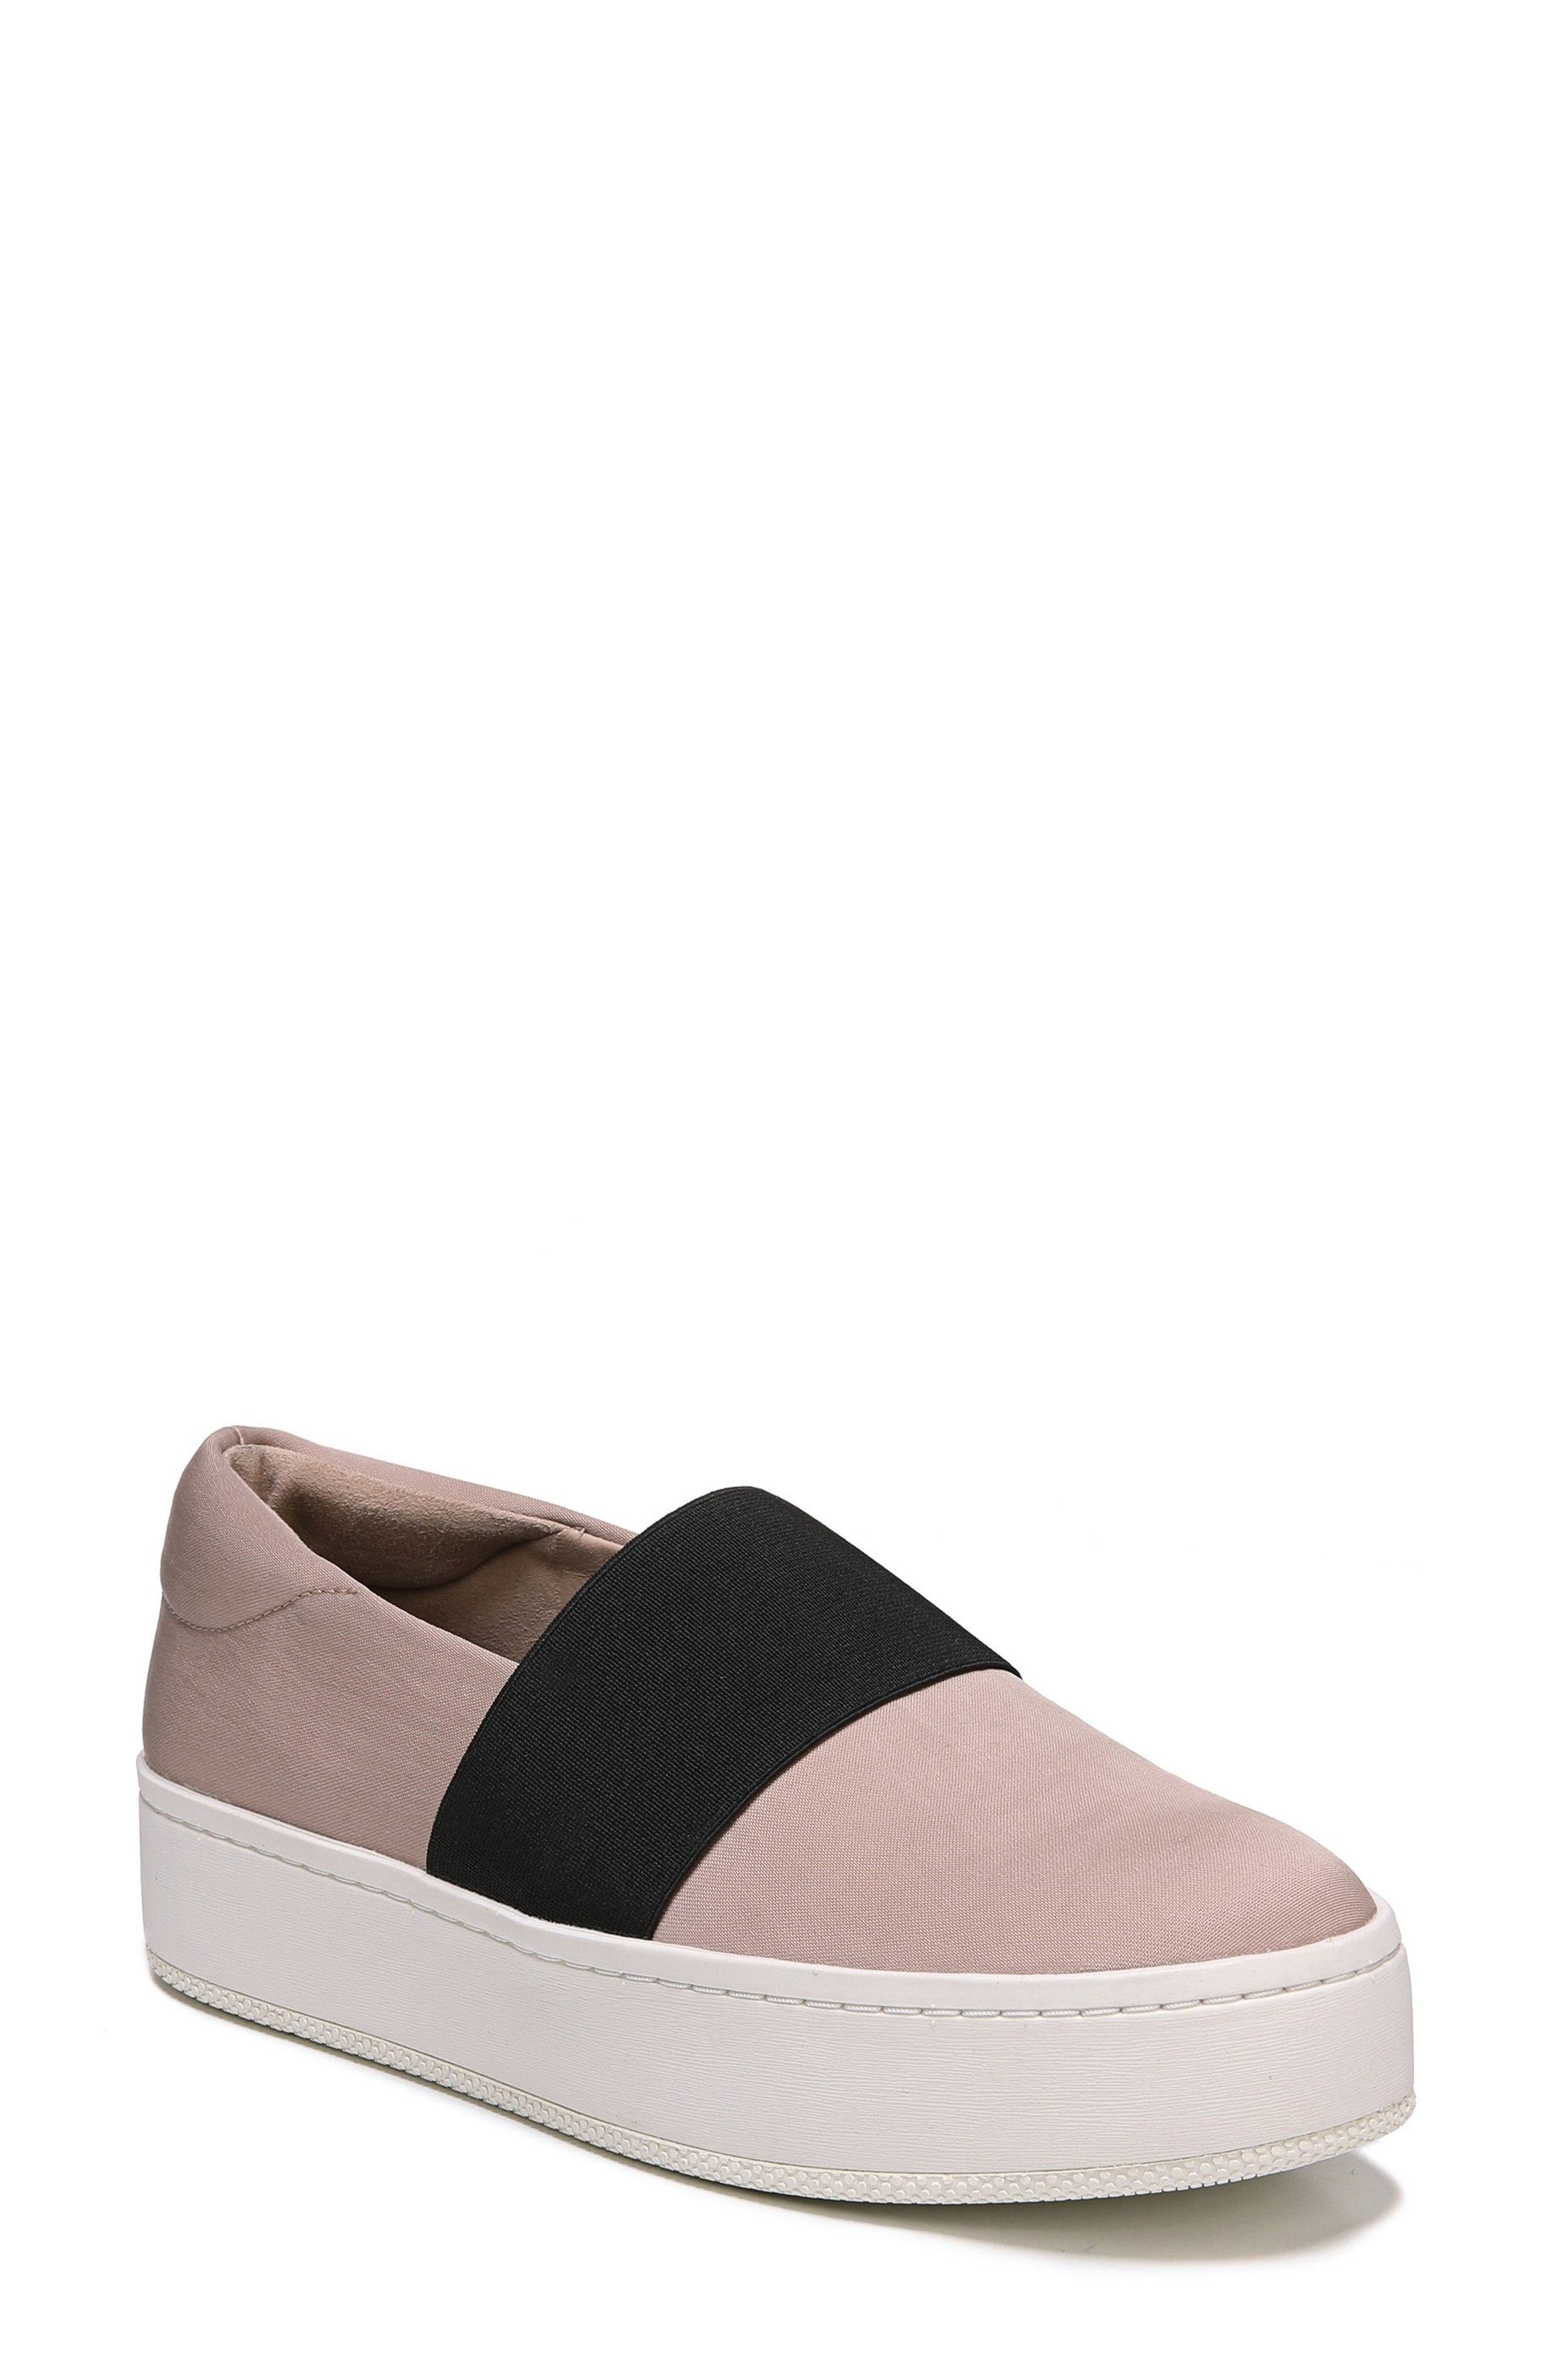 Traynor Platform Slip-On,                         Main,                         color, Blush/ Black Fabric